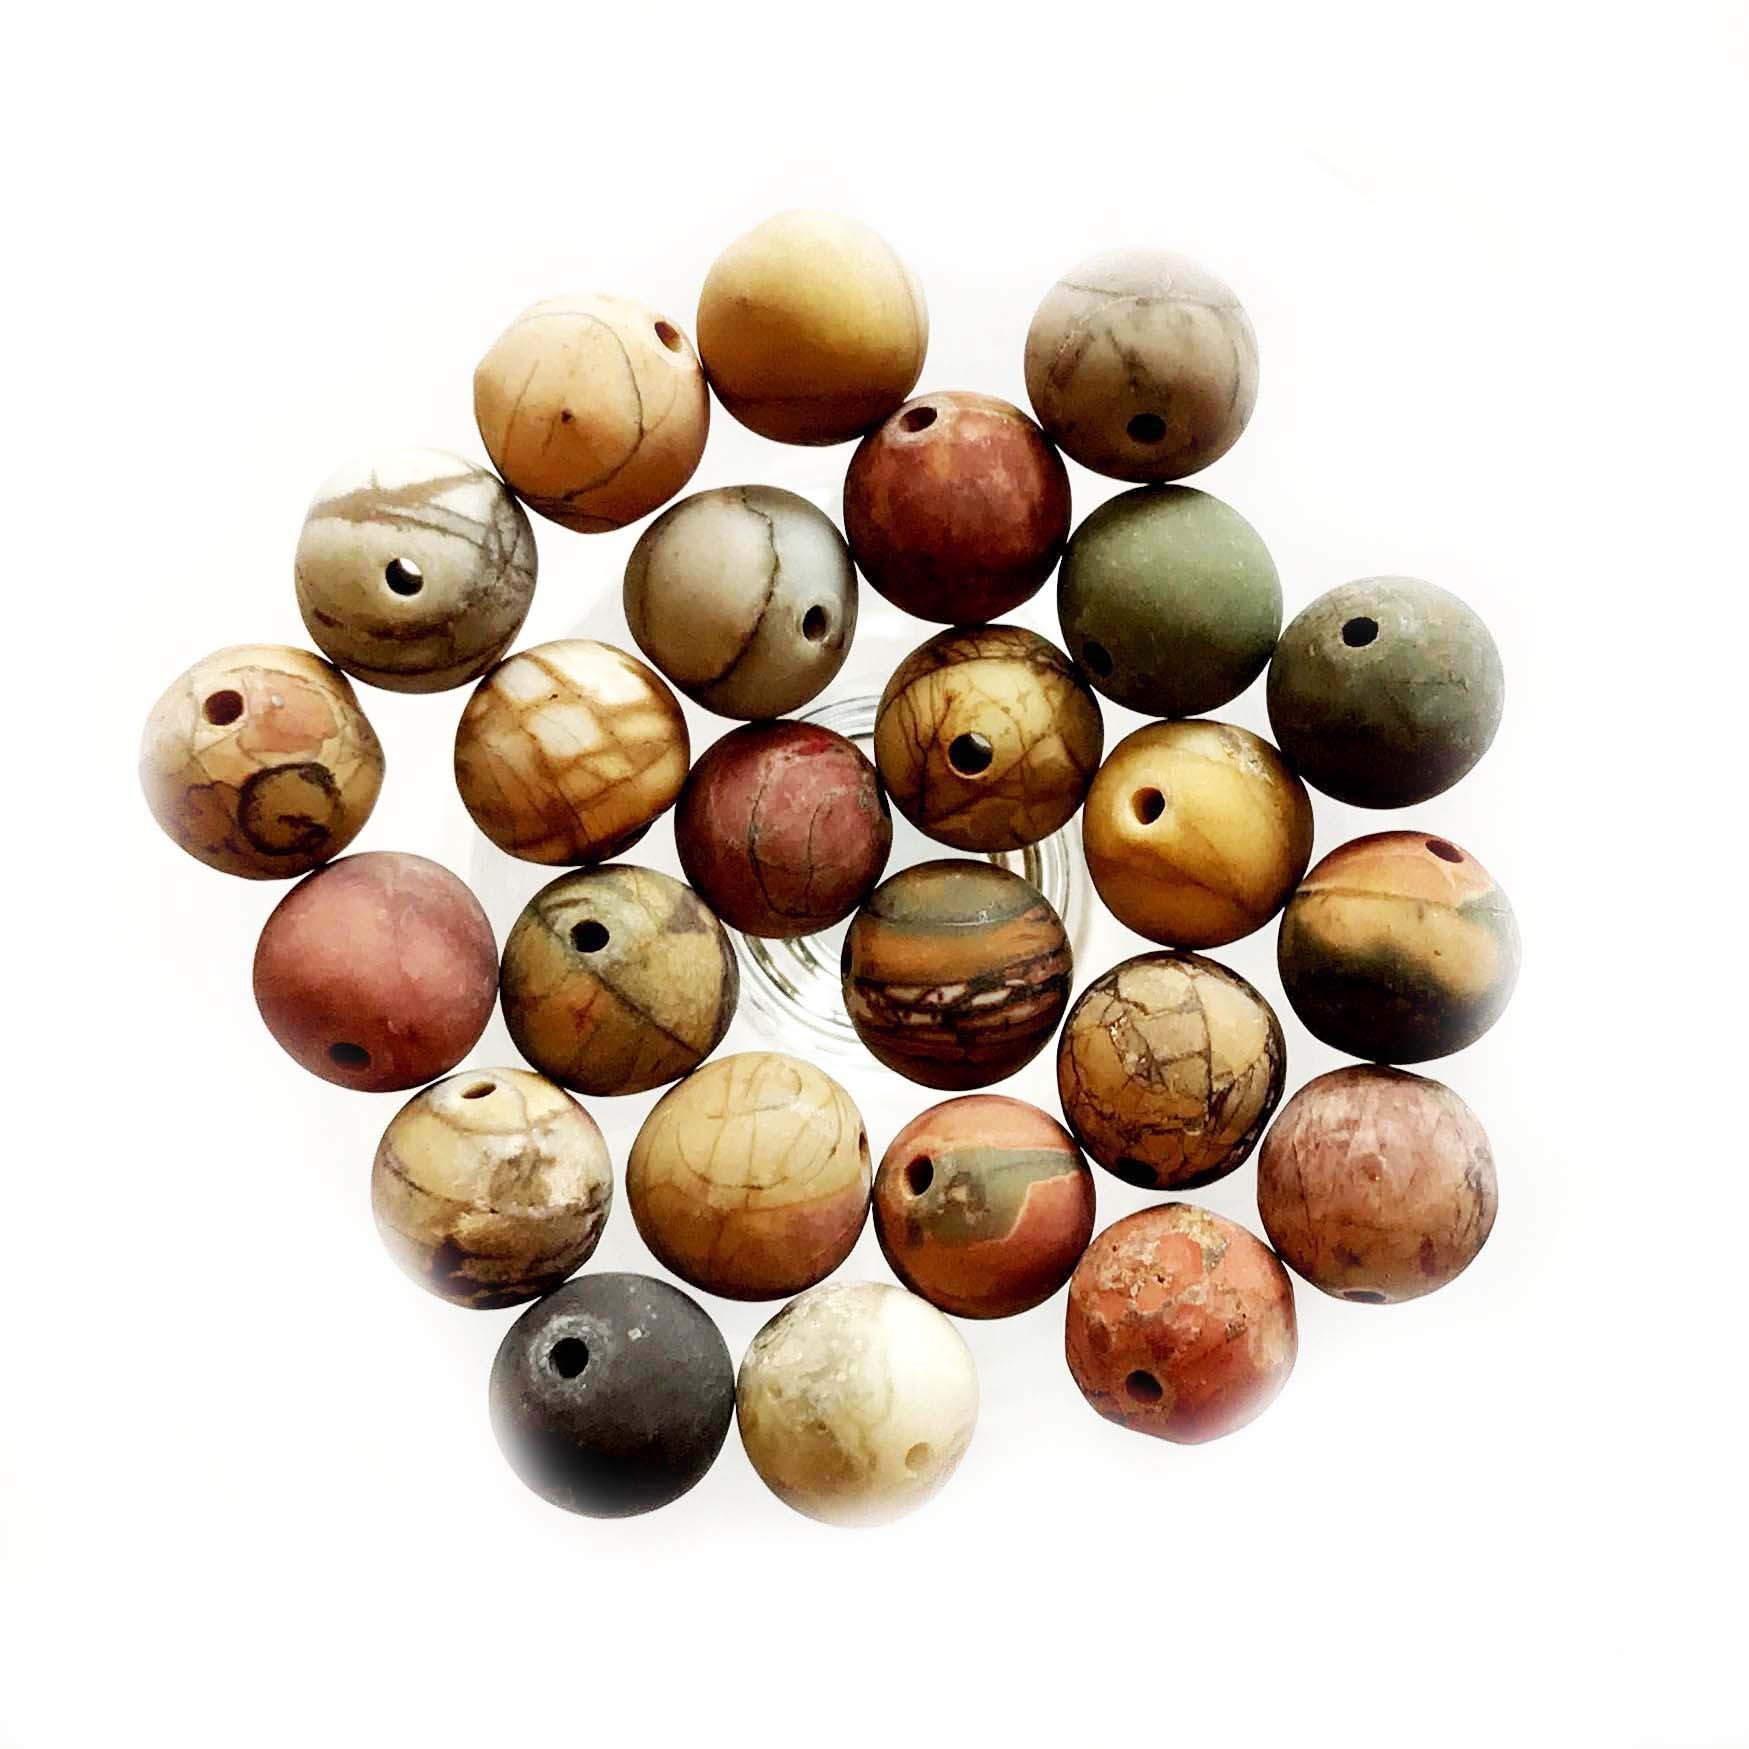 semi-precious beads, Jasper, red creek, stone beads, round, semi-precious stones, red beads, natural beads, jasper beads, red jasper beads, white lace Jasper, Jasper, 8mm jasper beads, B'sue Boutiques, 8mm semi-precious stone beads, 03606